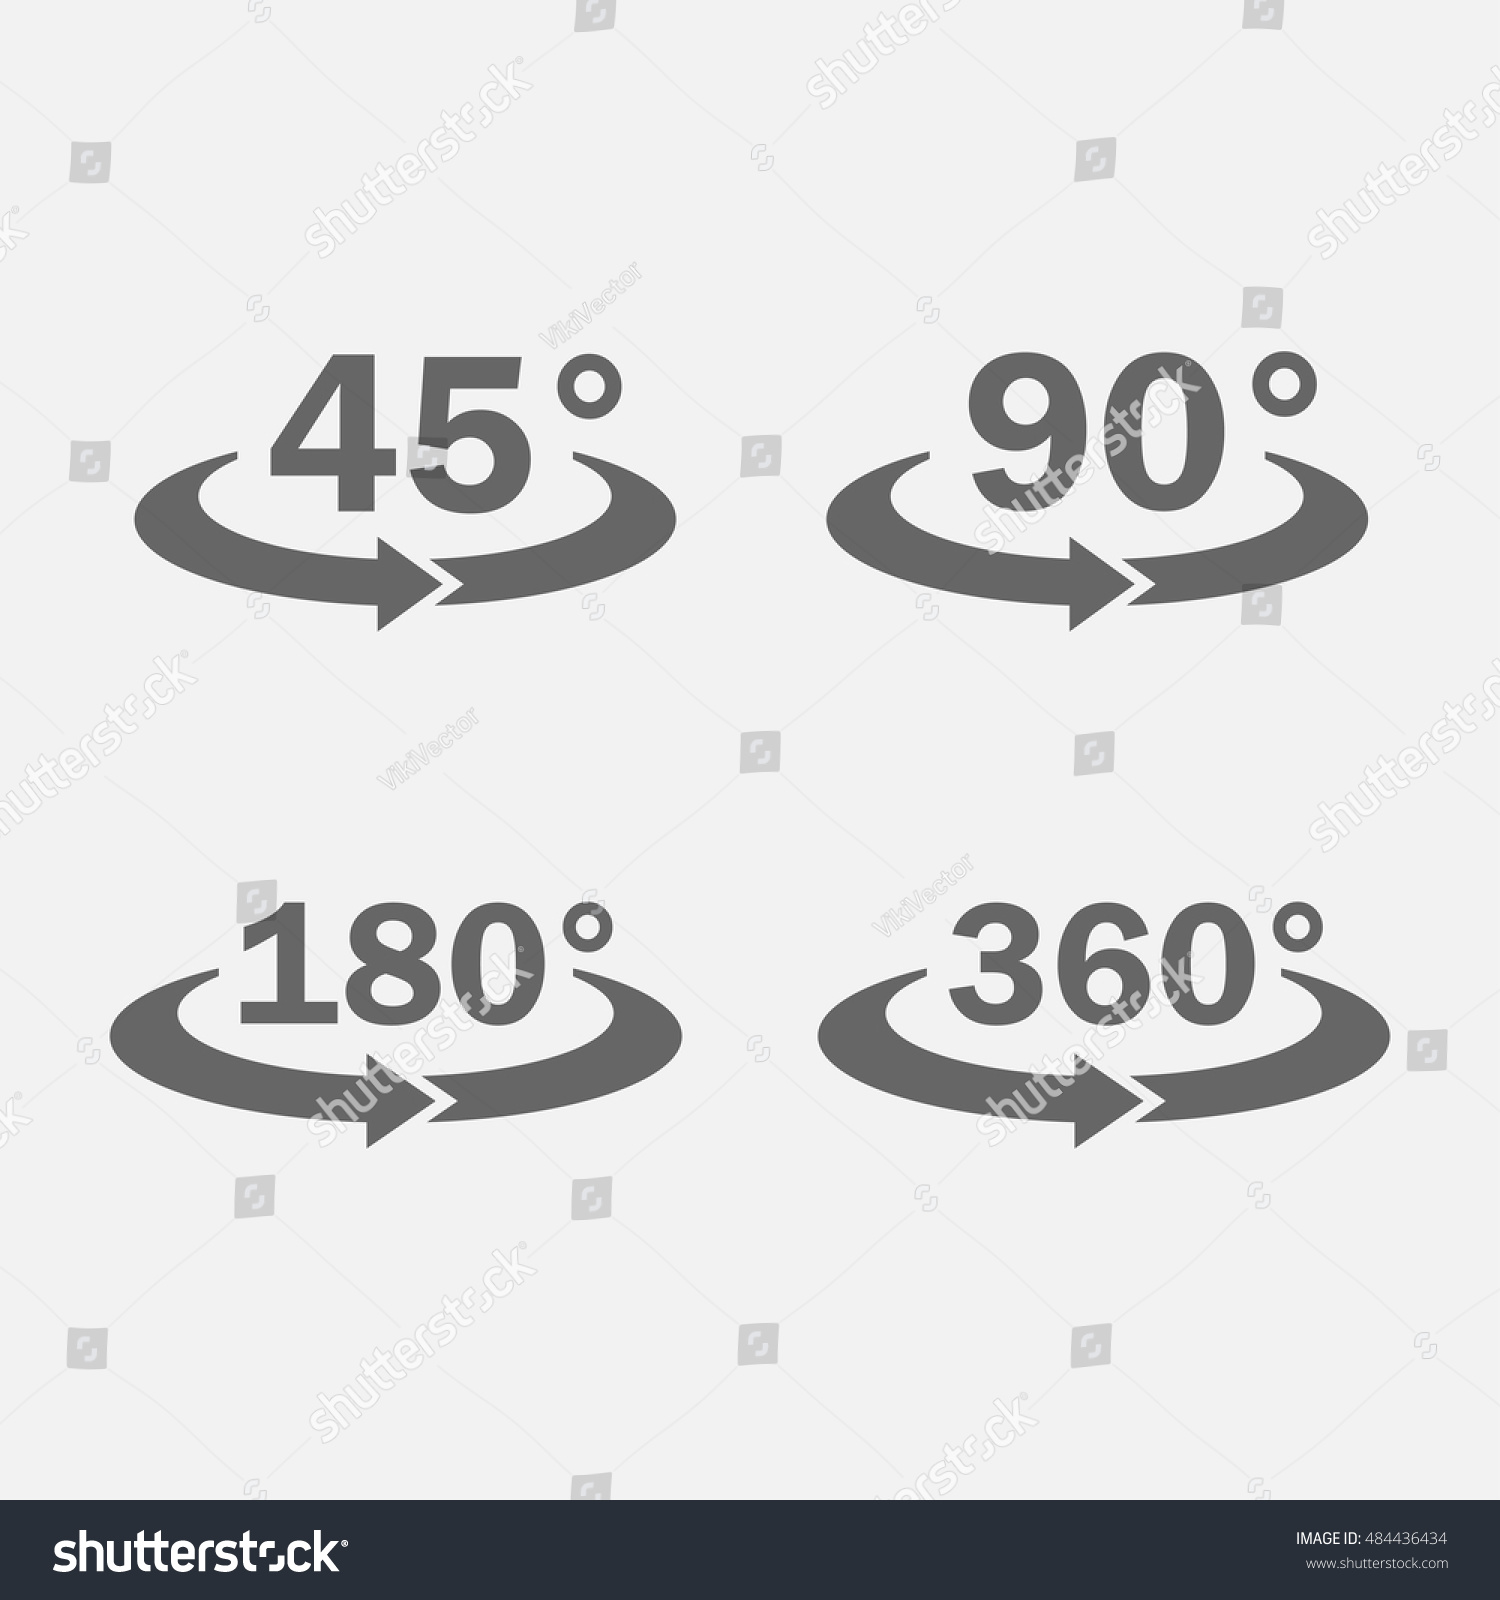 Background image rotate 90 - 45 90 180 360 Degrees View Icon Vector Set Isolated From The Background